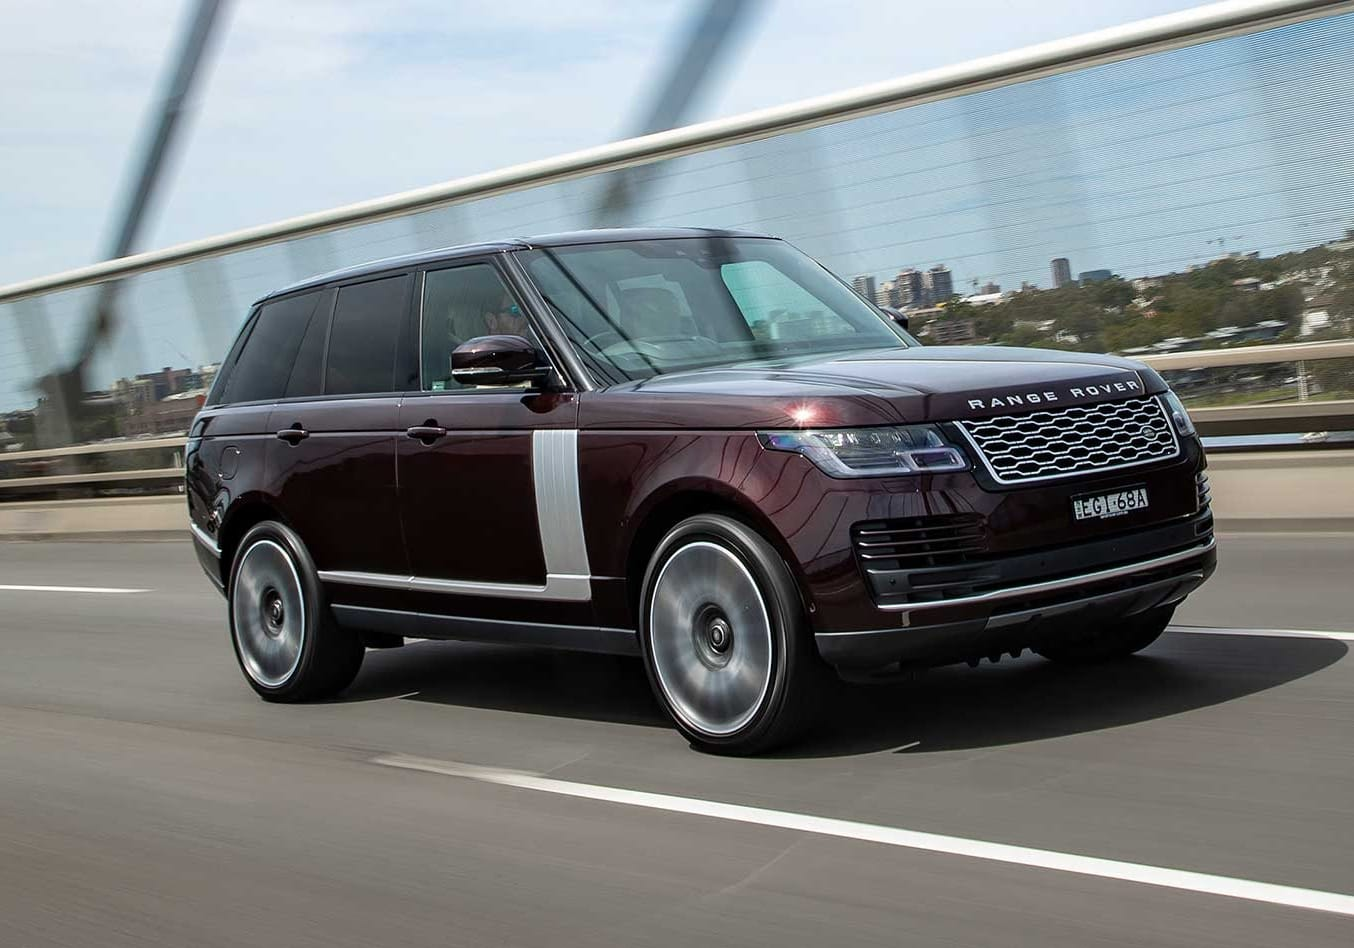 2020 Range Rover P400 review